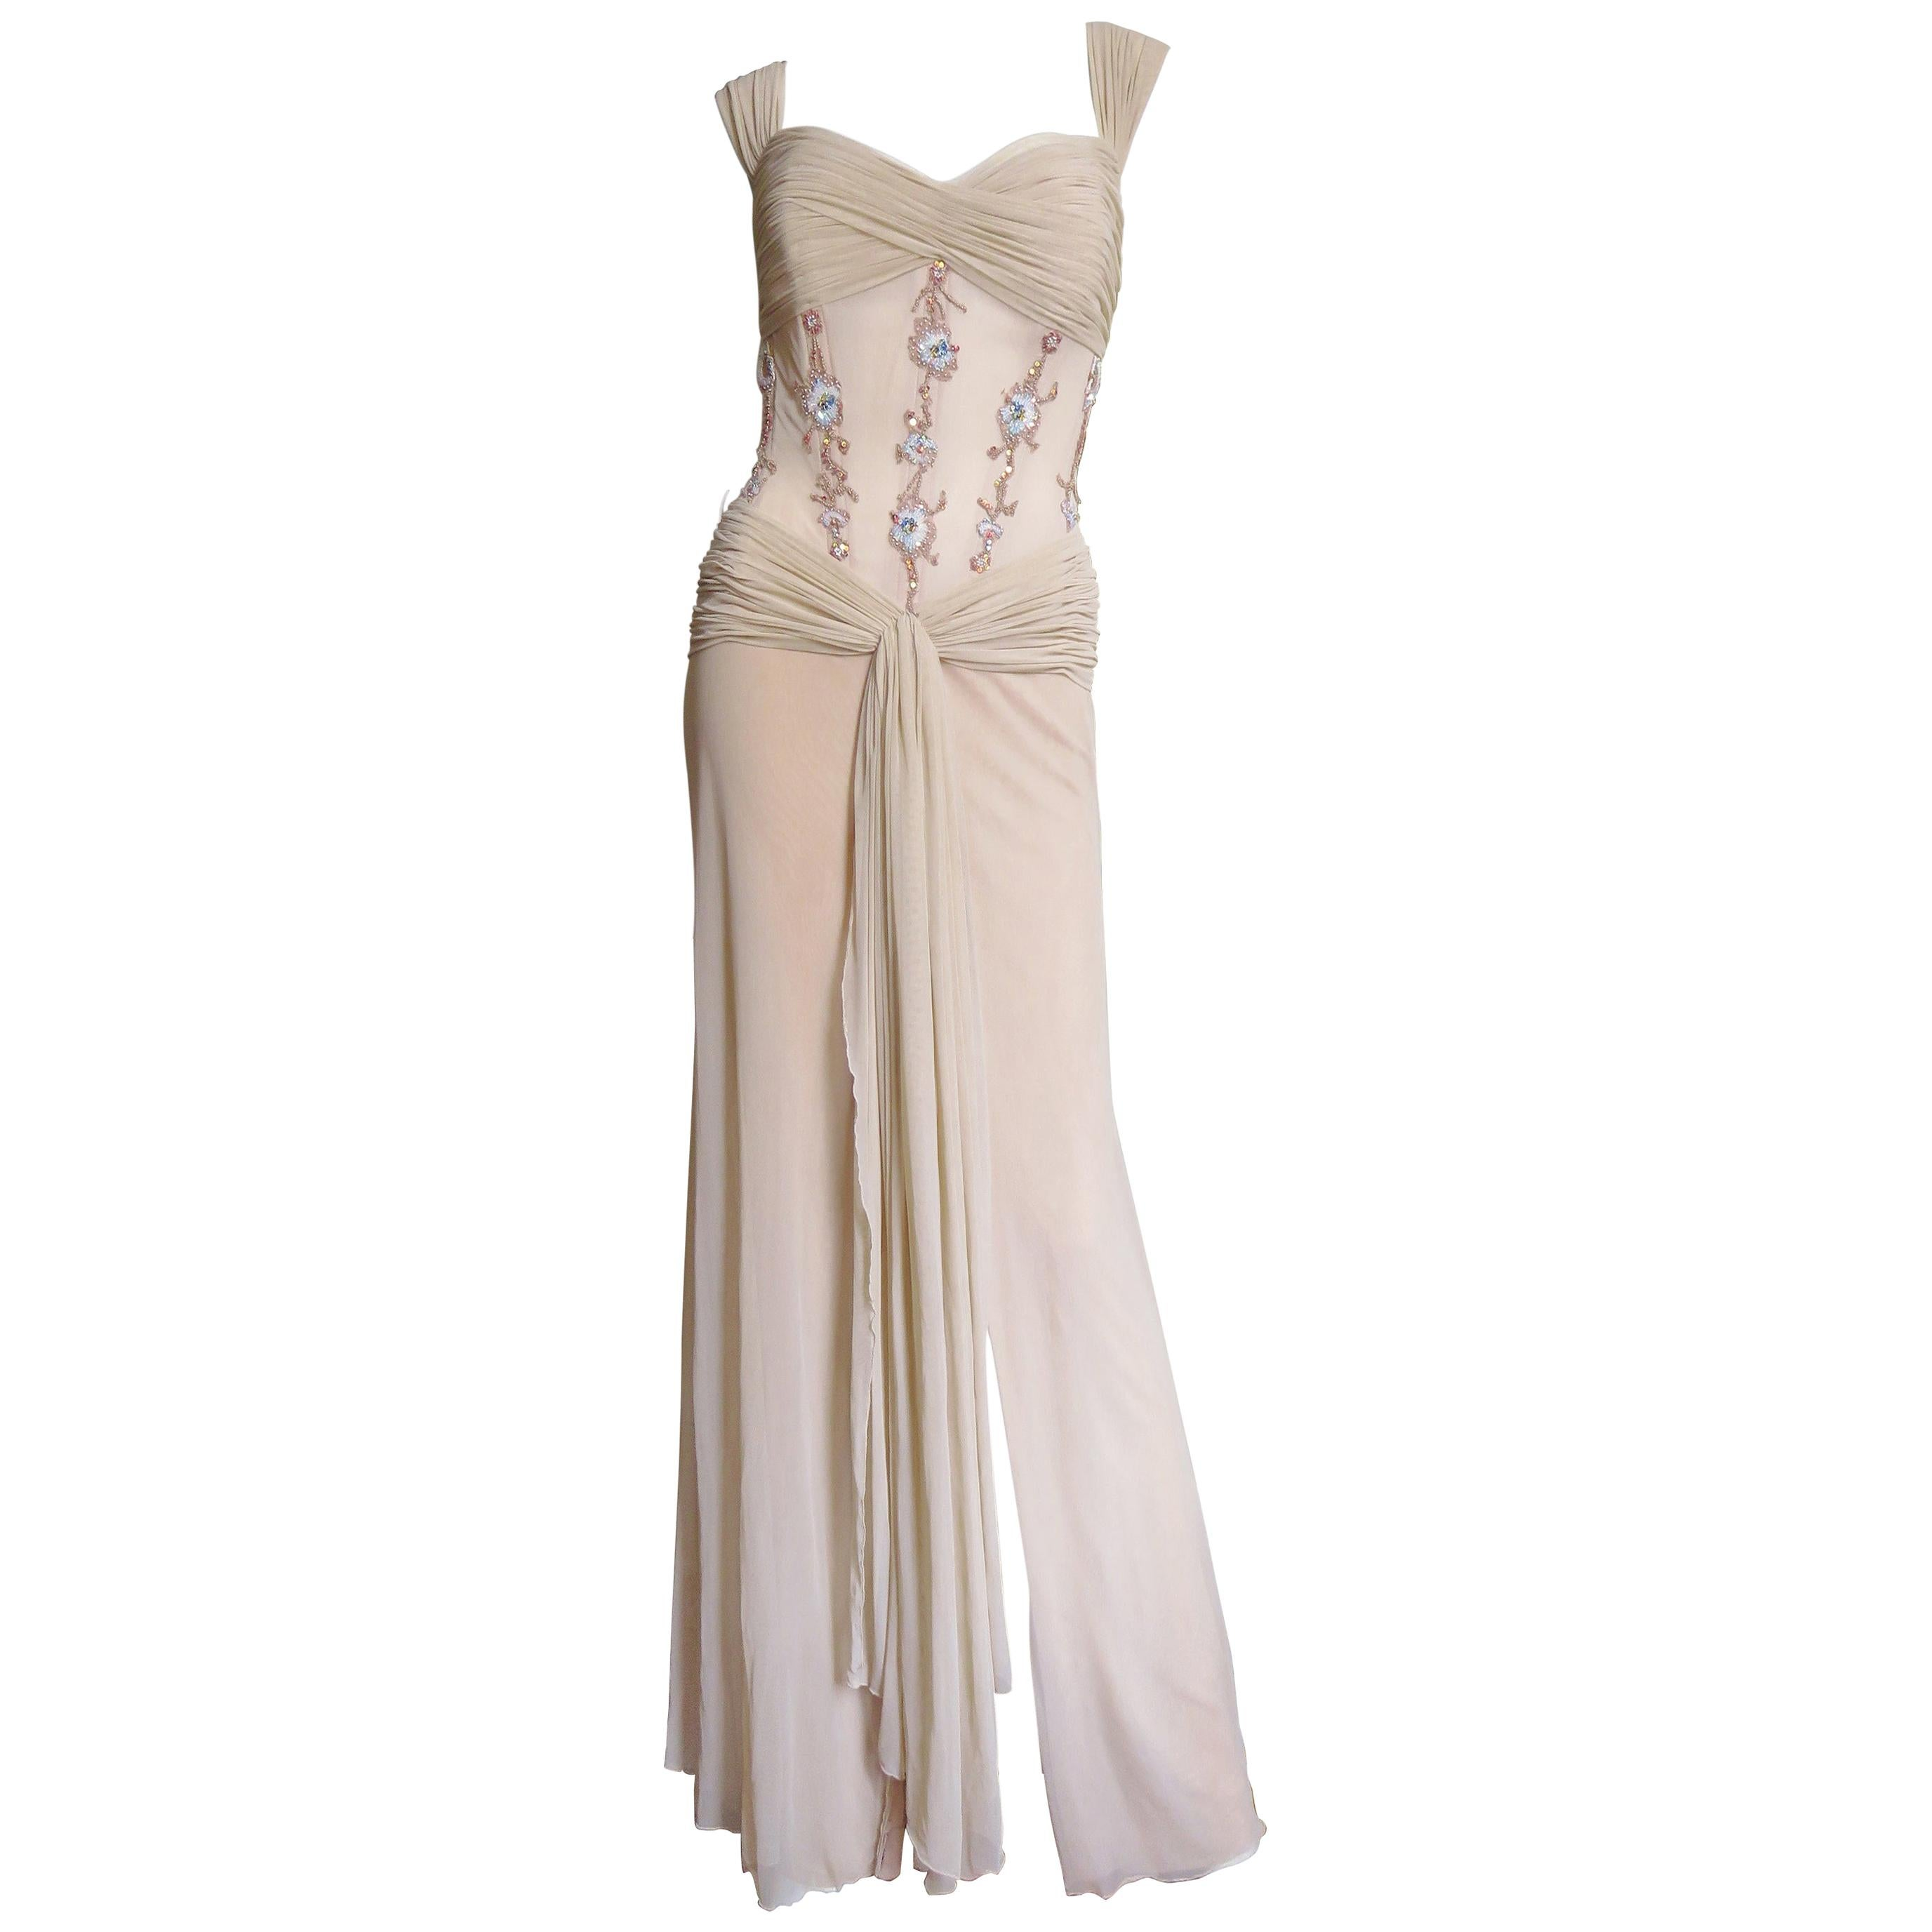 Vicky Tiel Couture Corset Gown and Shawl 1990s